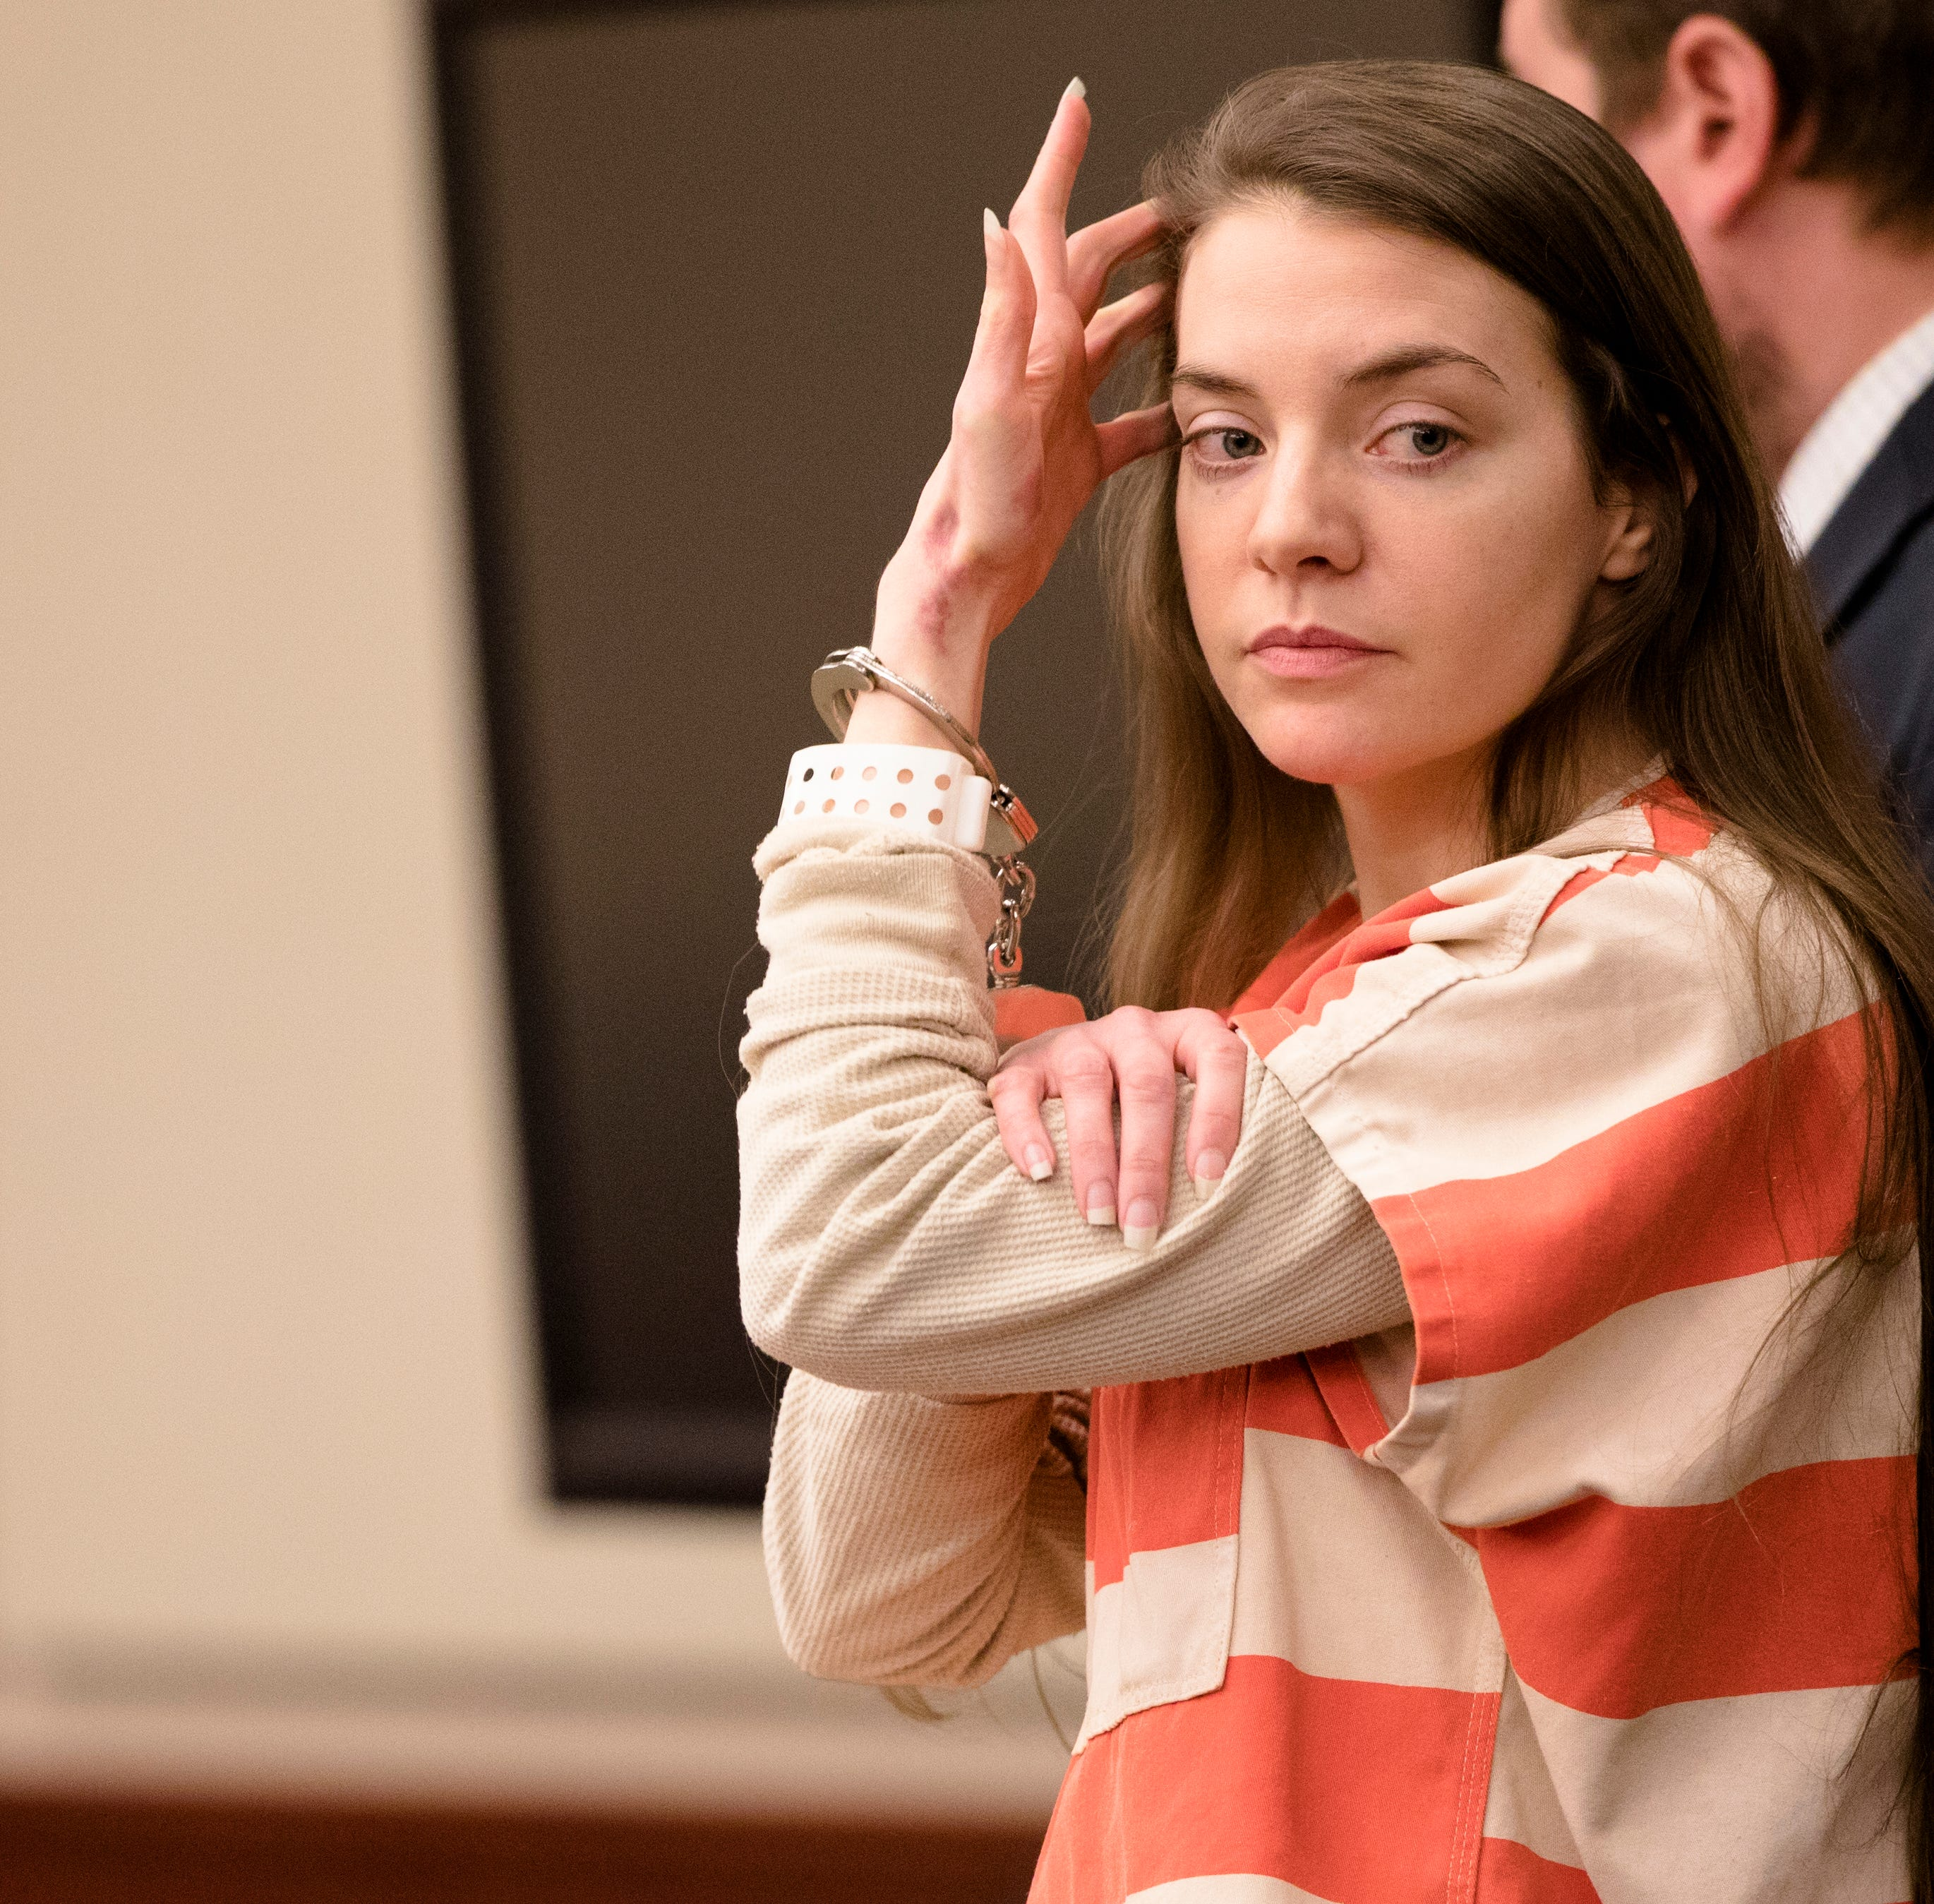 Judge grants convicted murderer Shayna Hubers a divorce from jailhouse spouse